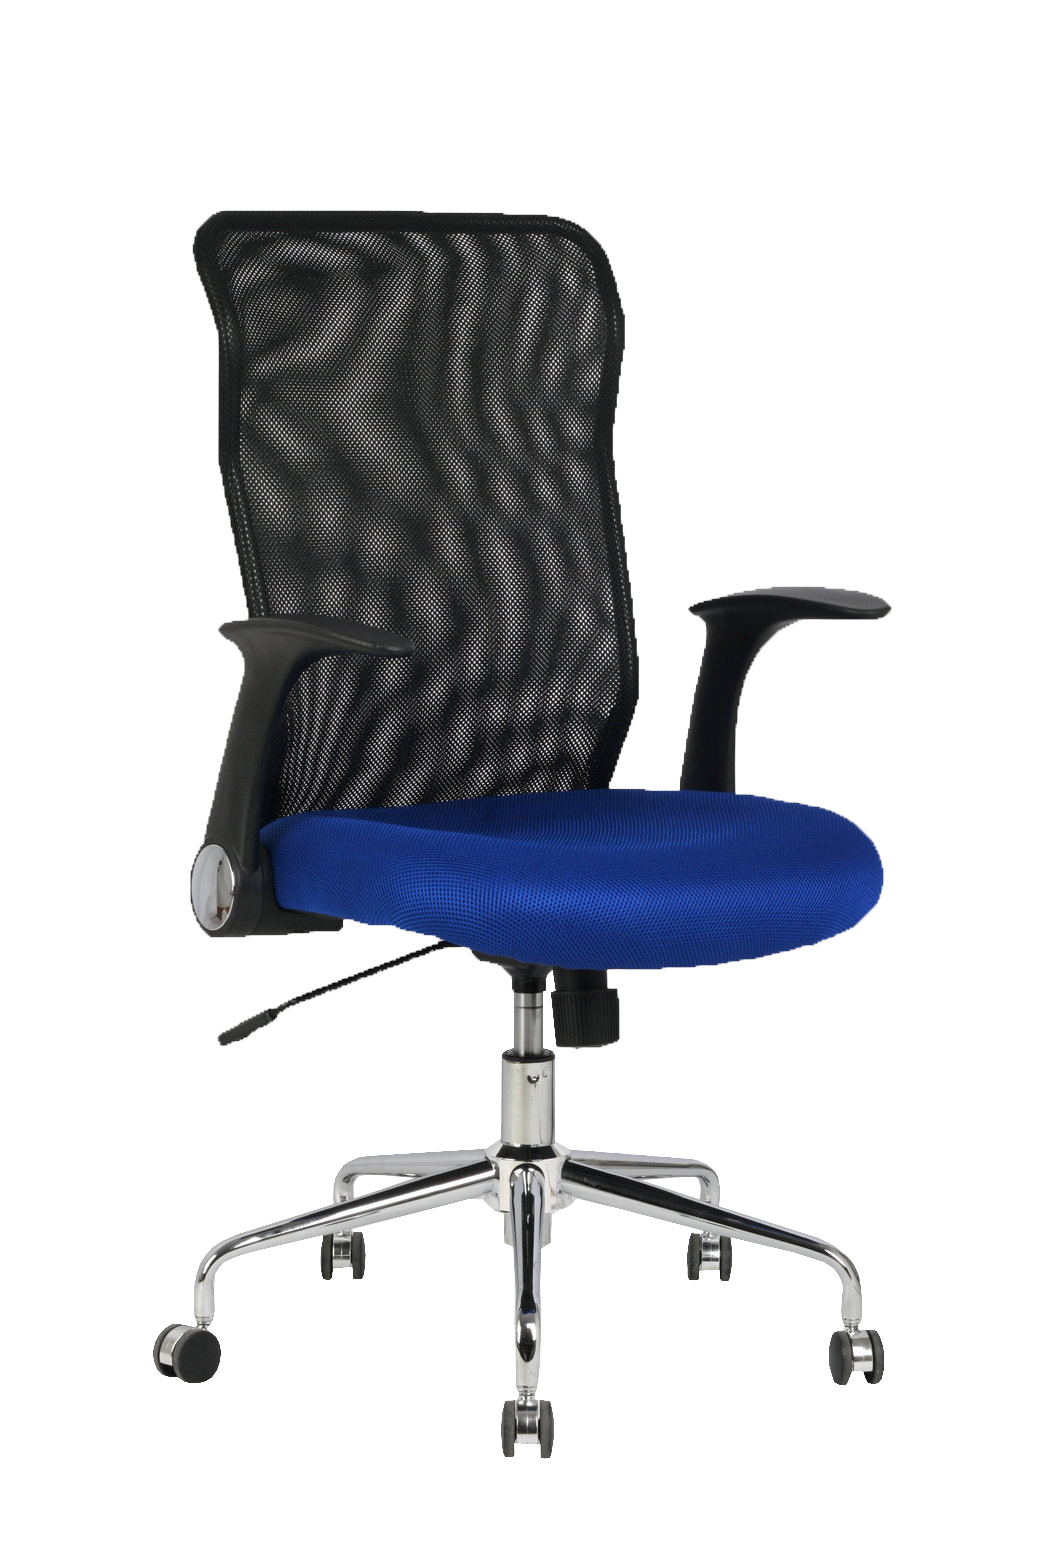 Chair's Office Desk Ergonomic With House Mechanism Tilting, Arms Retractable And Dimmable In High Altitude Respaldo De Mesh Tran